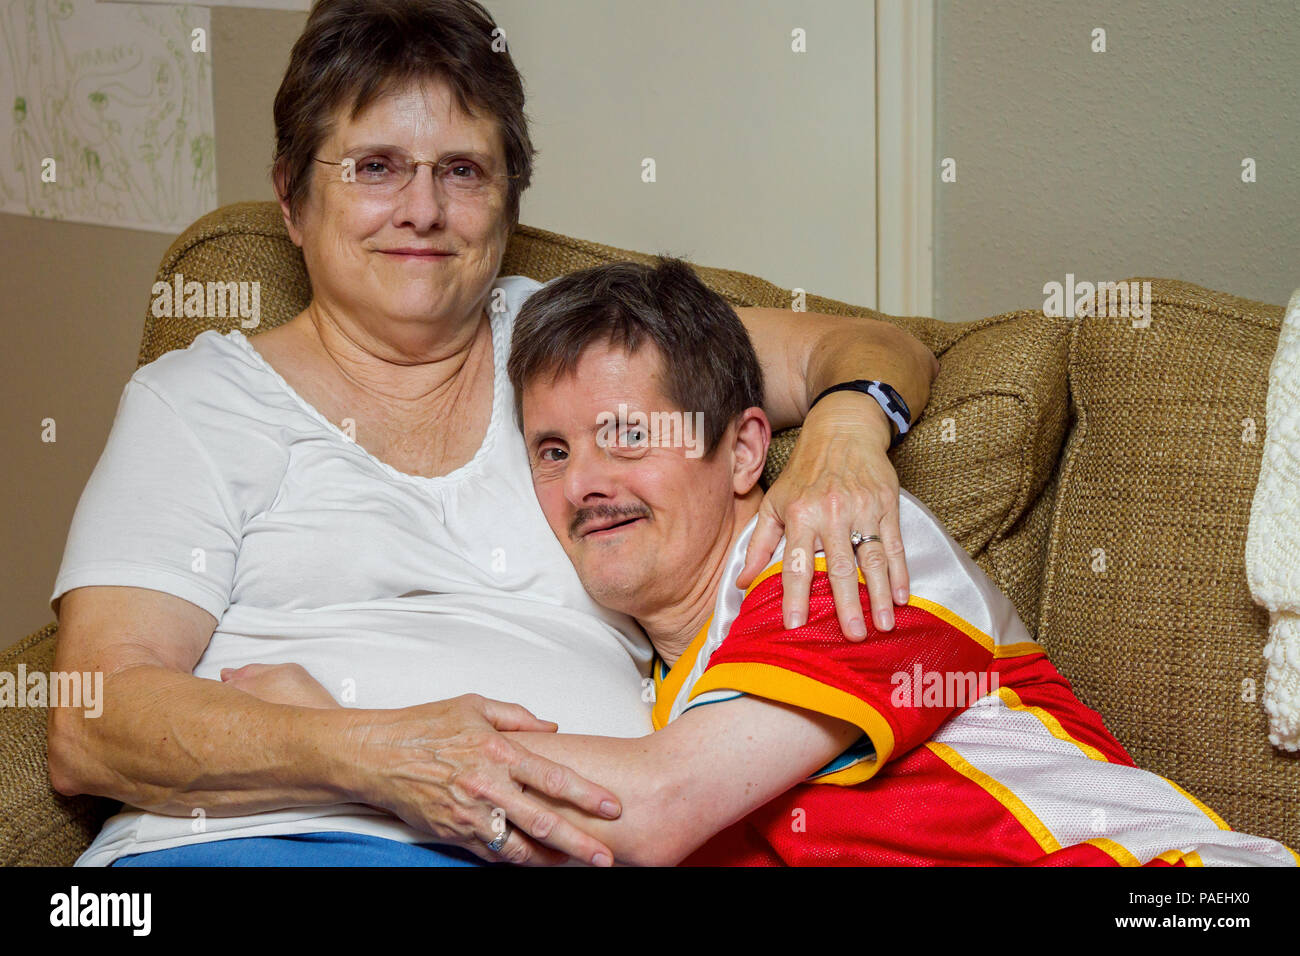 An older man with Downs Syndrome, hugs his older sister as they sit on a couch. The woman looks tired, the man looks mischeivious.  He is about to tic - Stock Image